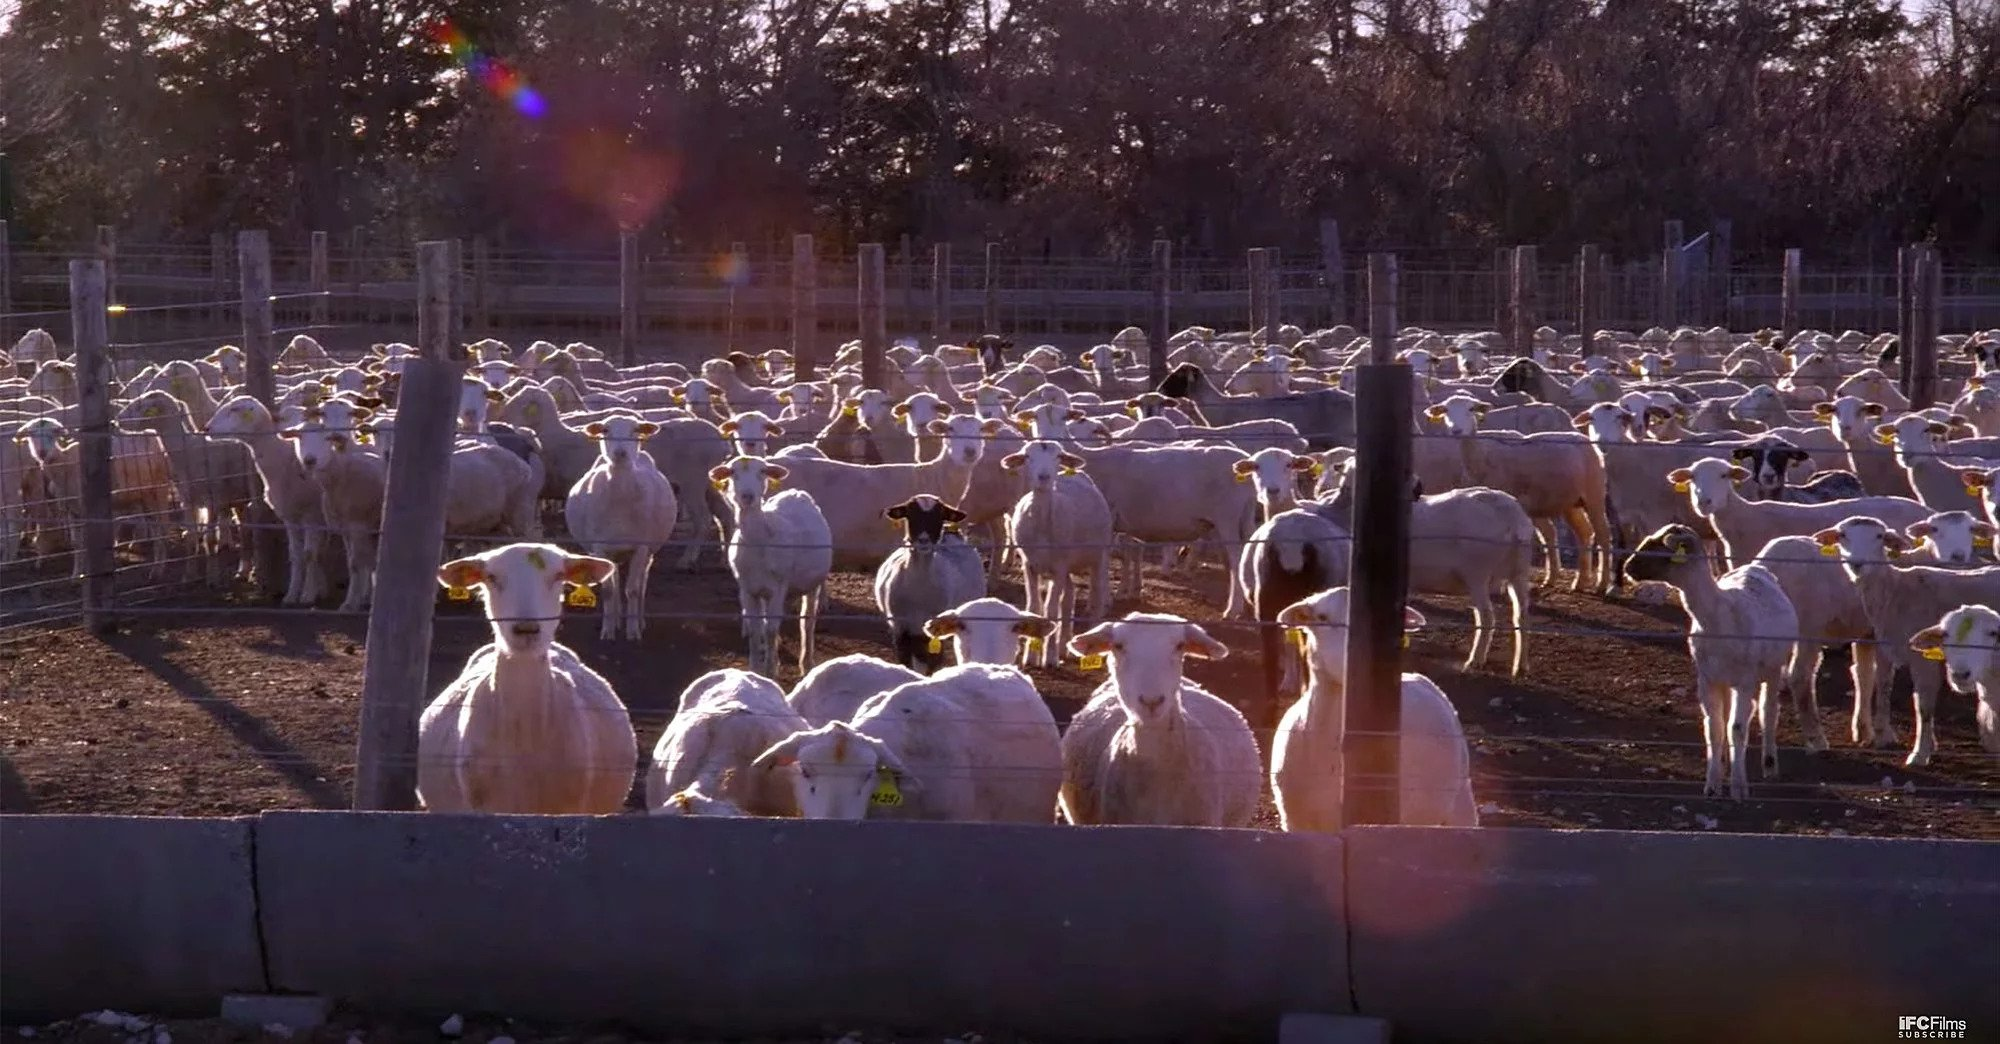 Eating Animals, Factory Farming and the Pandemic